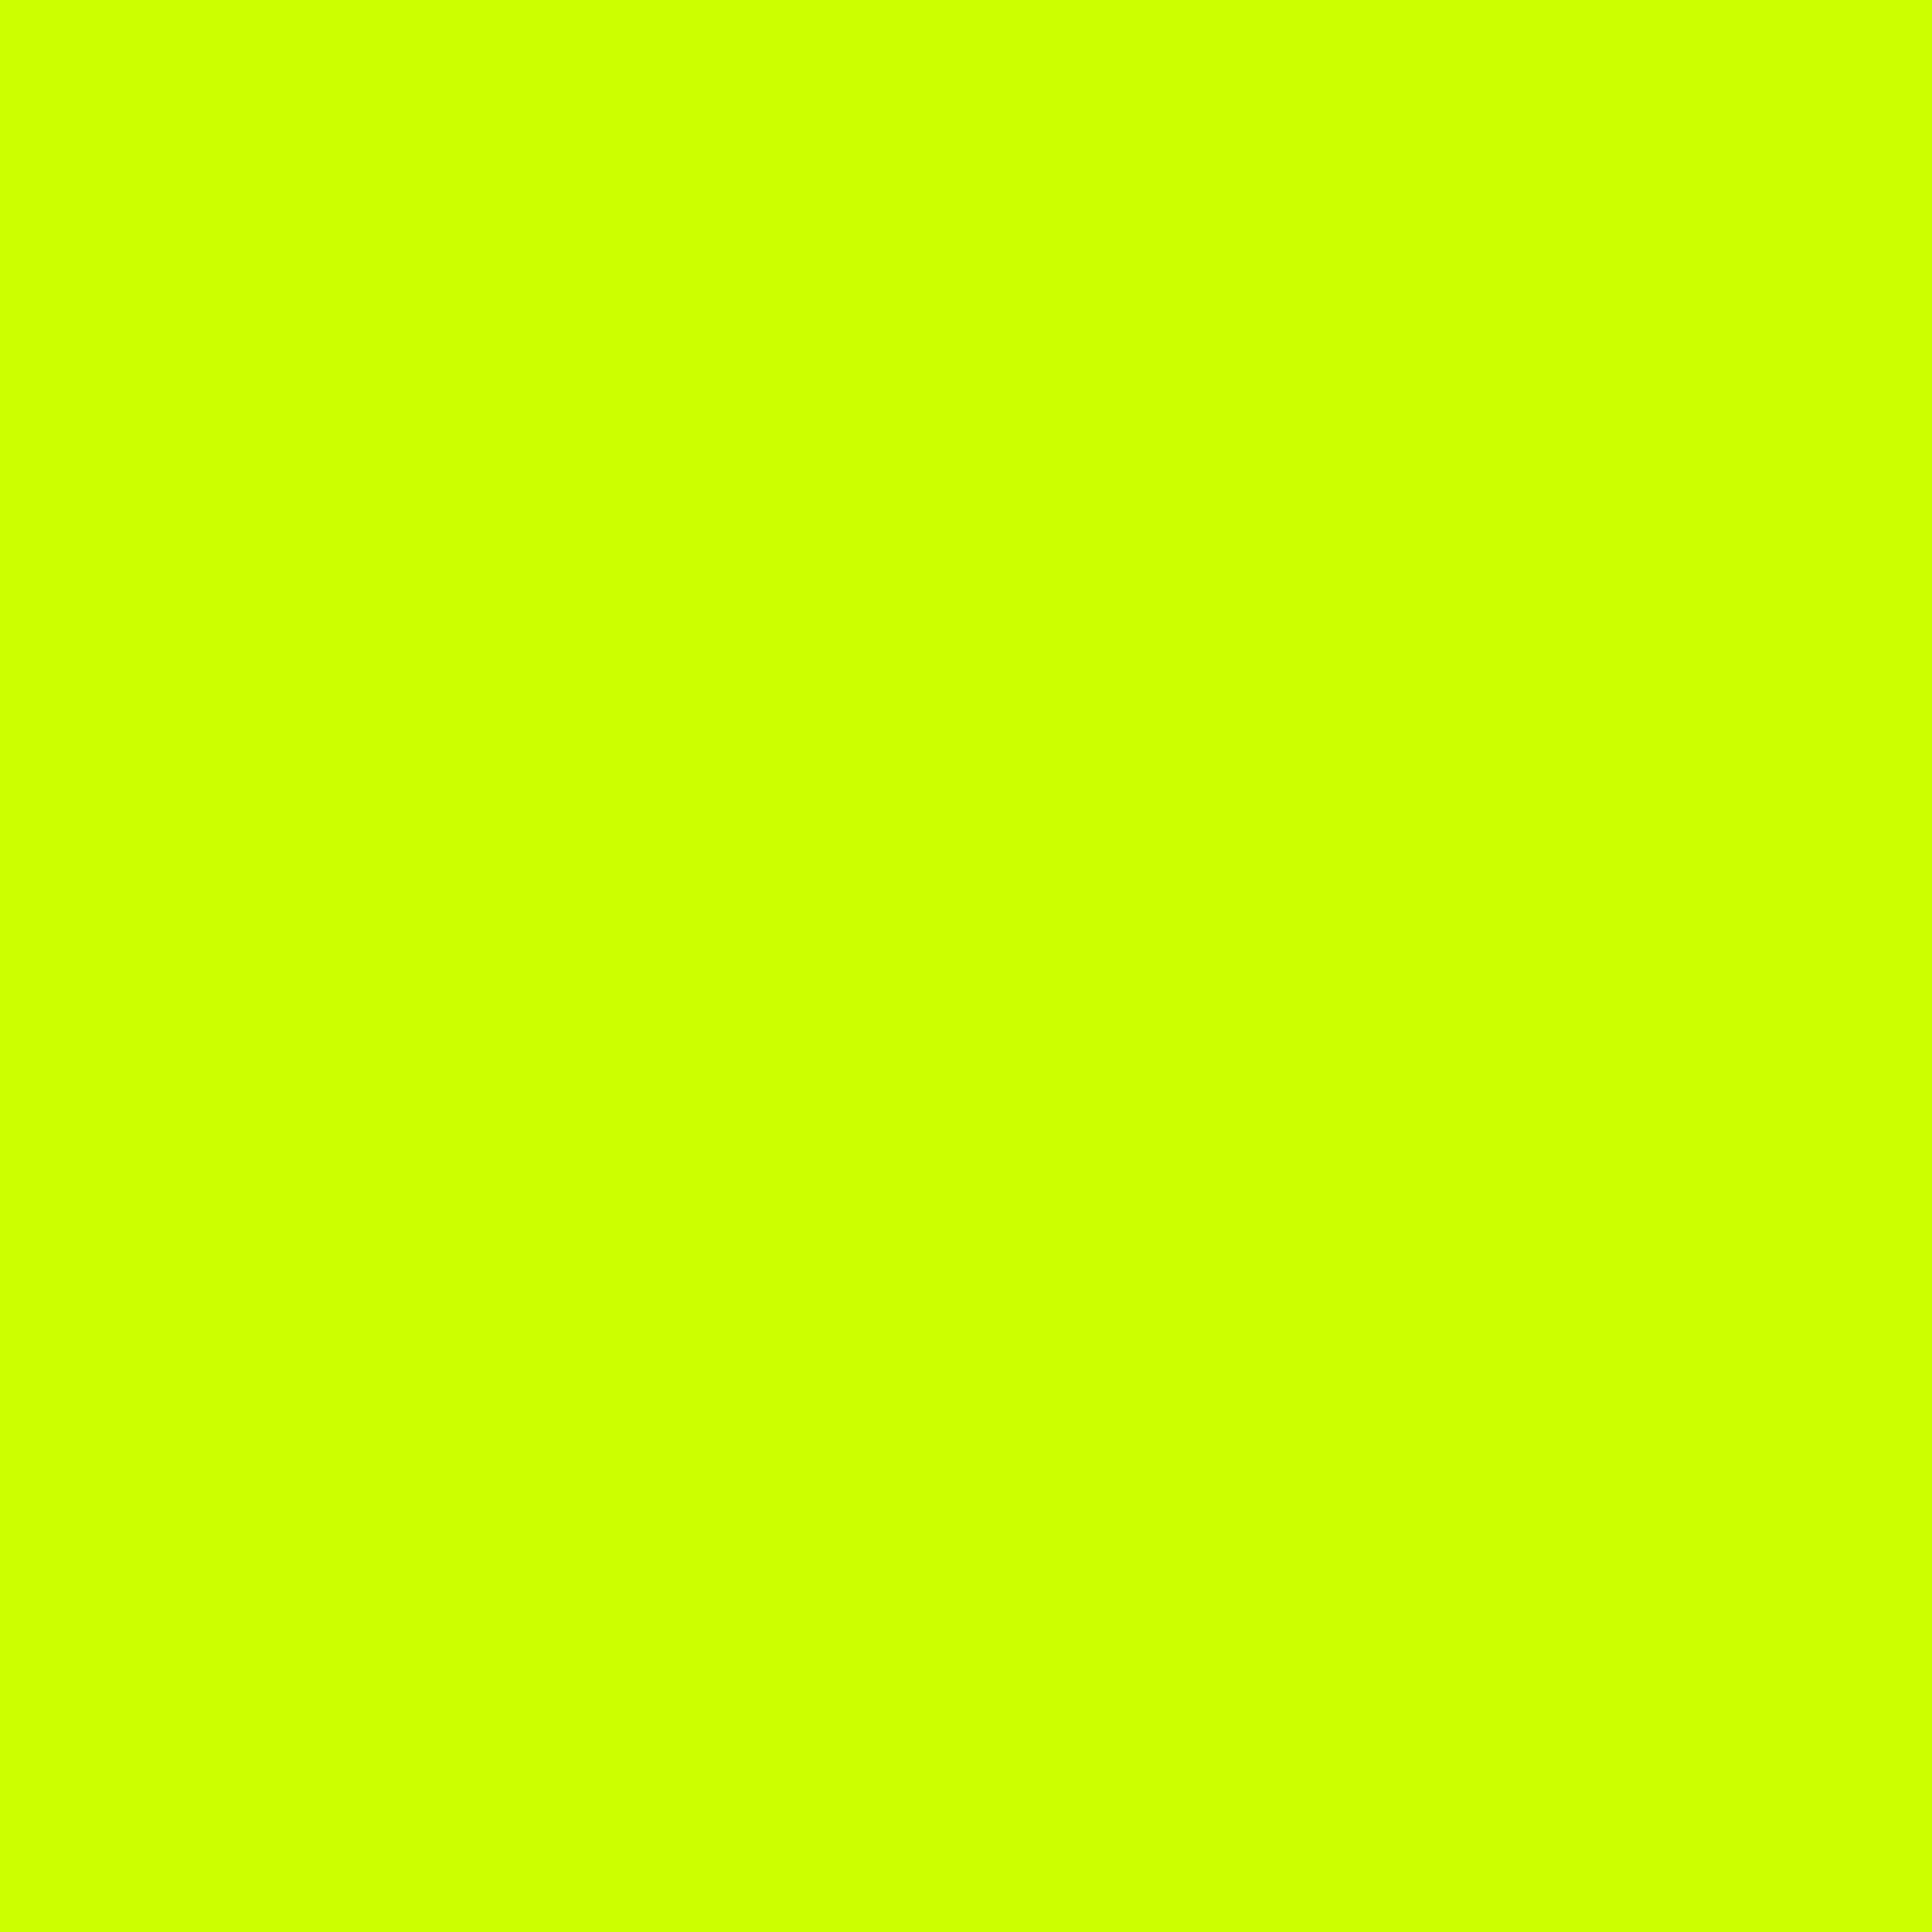 2732x2732 Electric Lime Solid Color Background